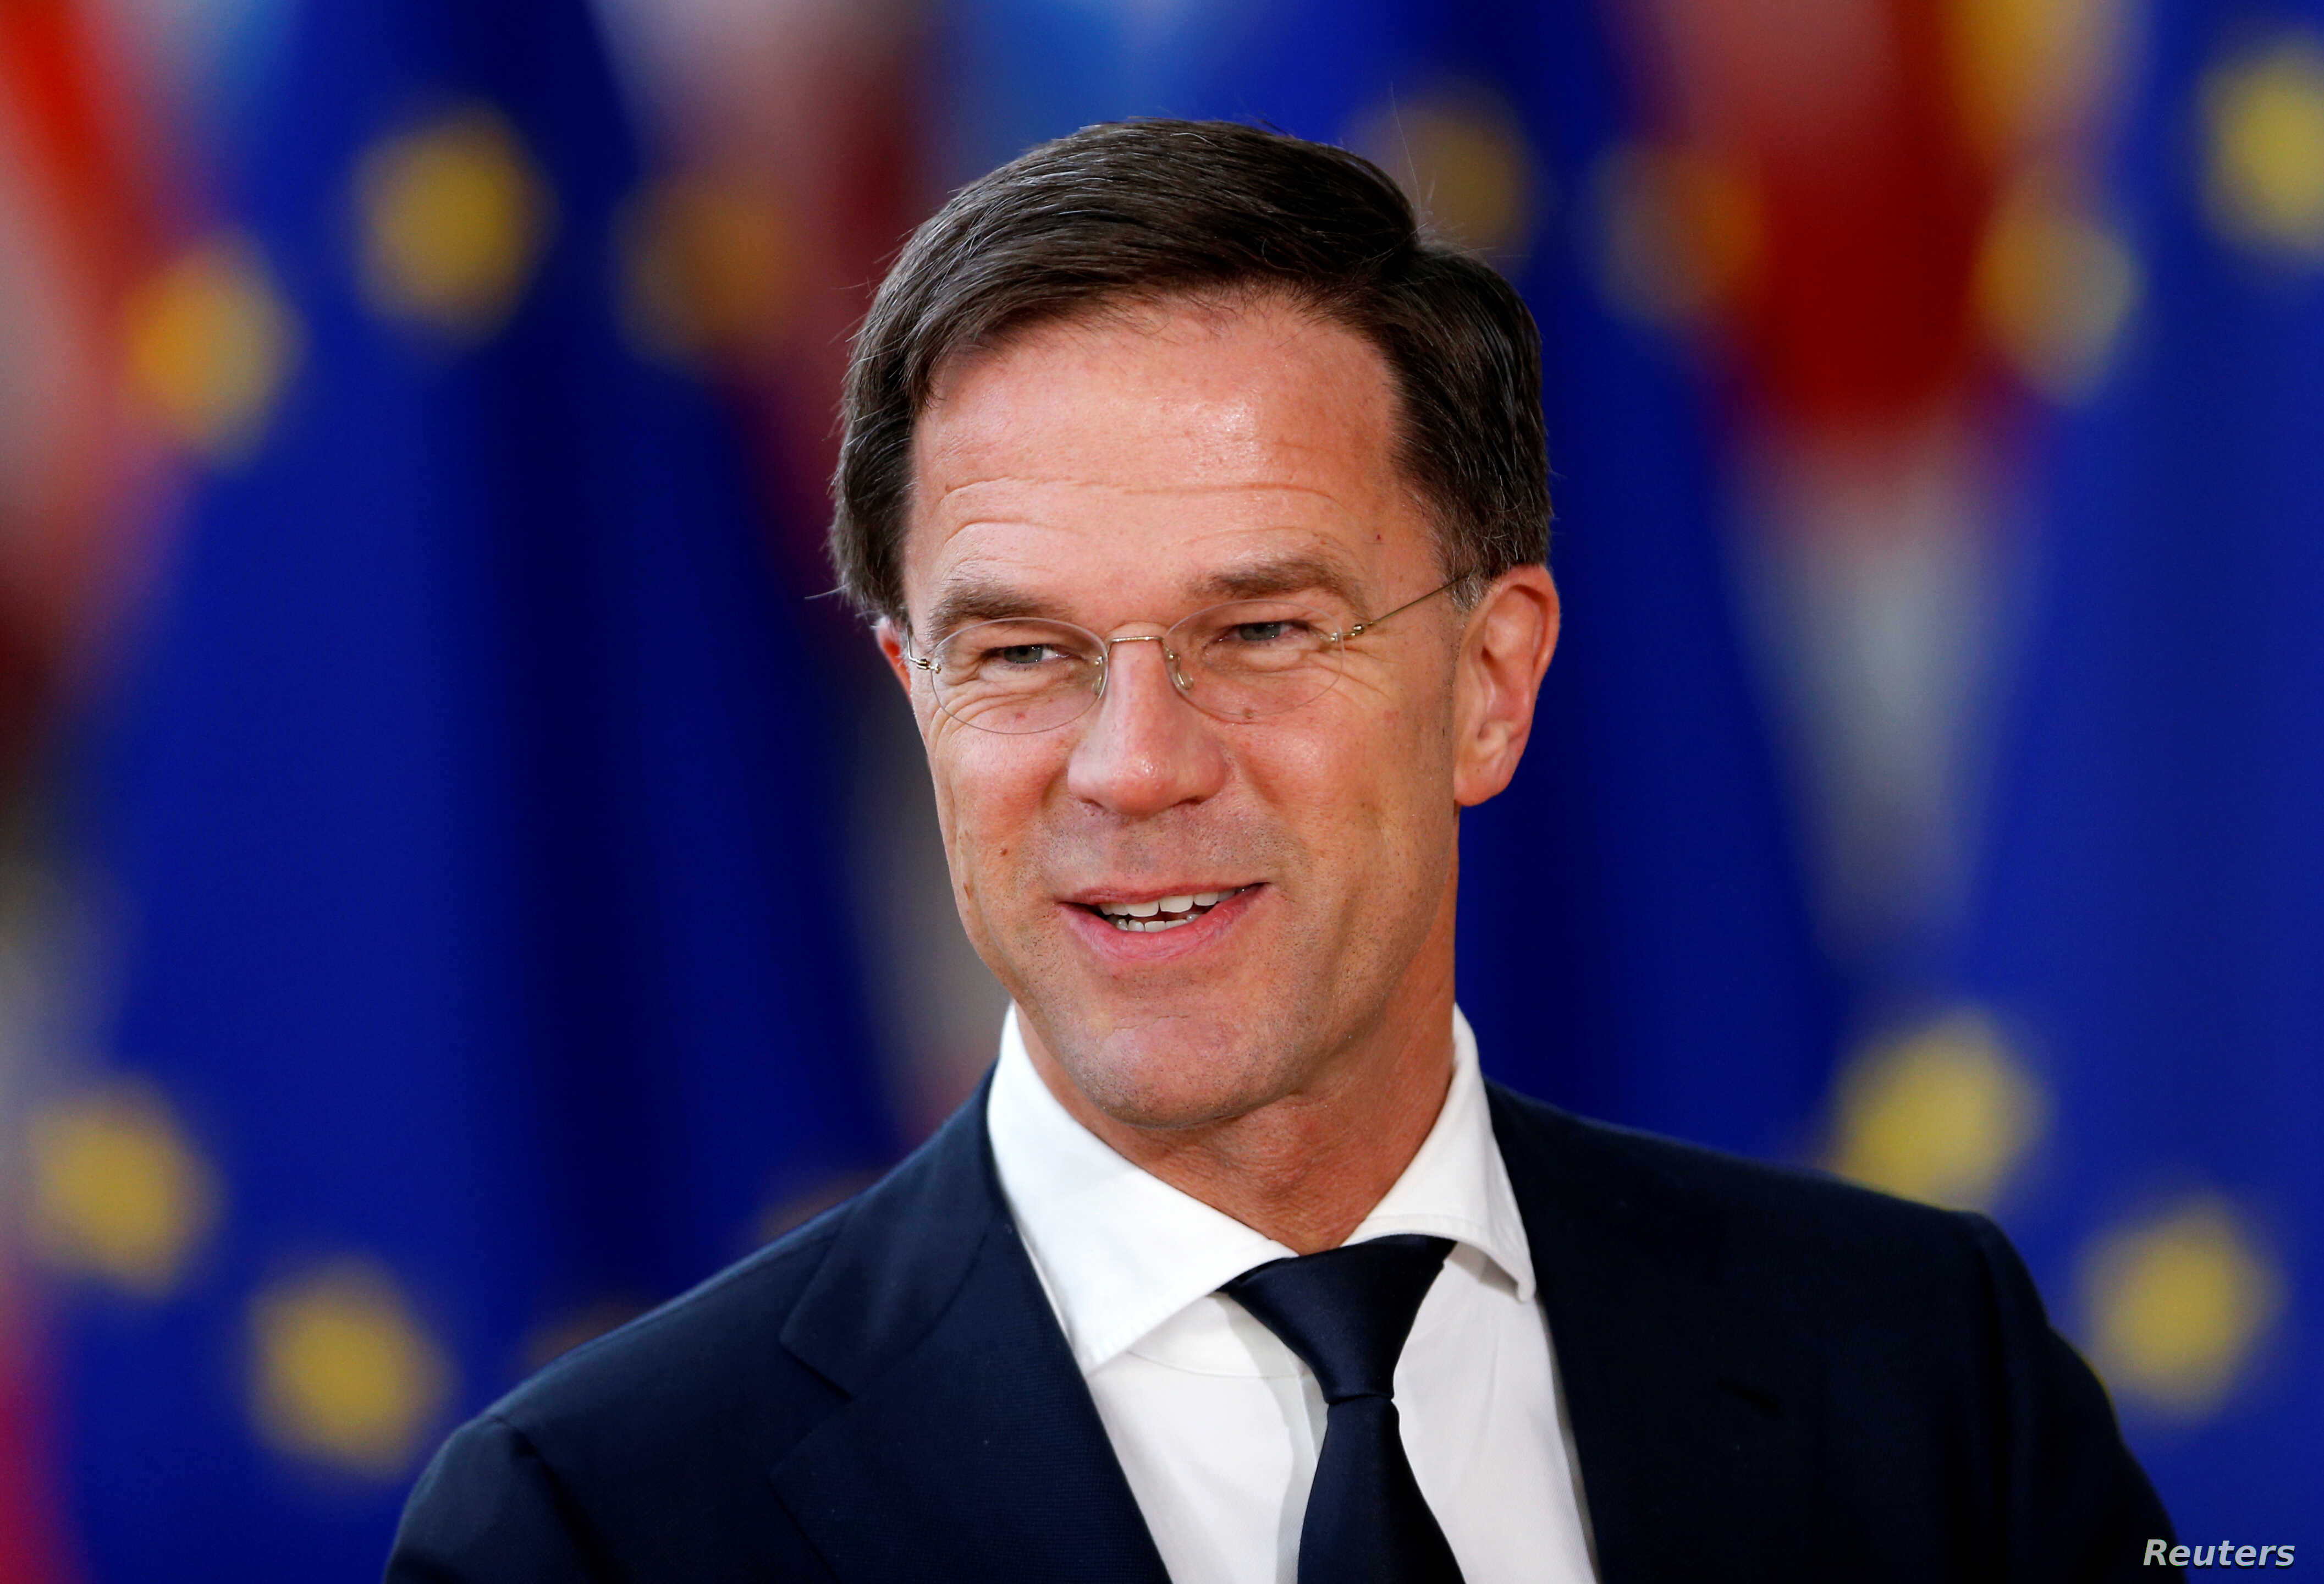 Netherlands' Prime Minister Mark Rutte arrives at a European Union leaders informal summit in Brussels, Belgium, Feb. 23, 2018.